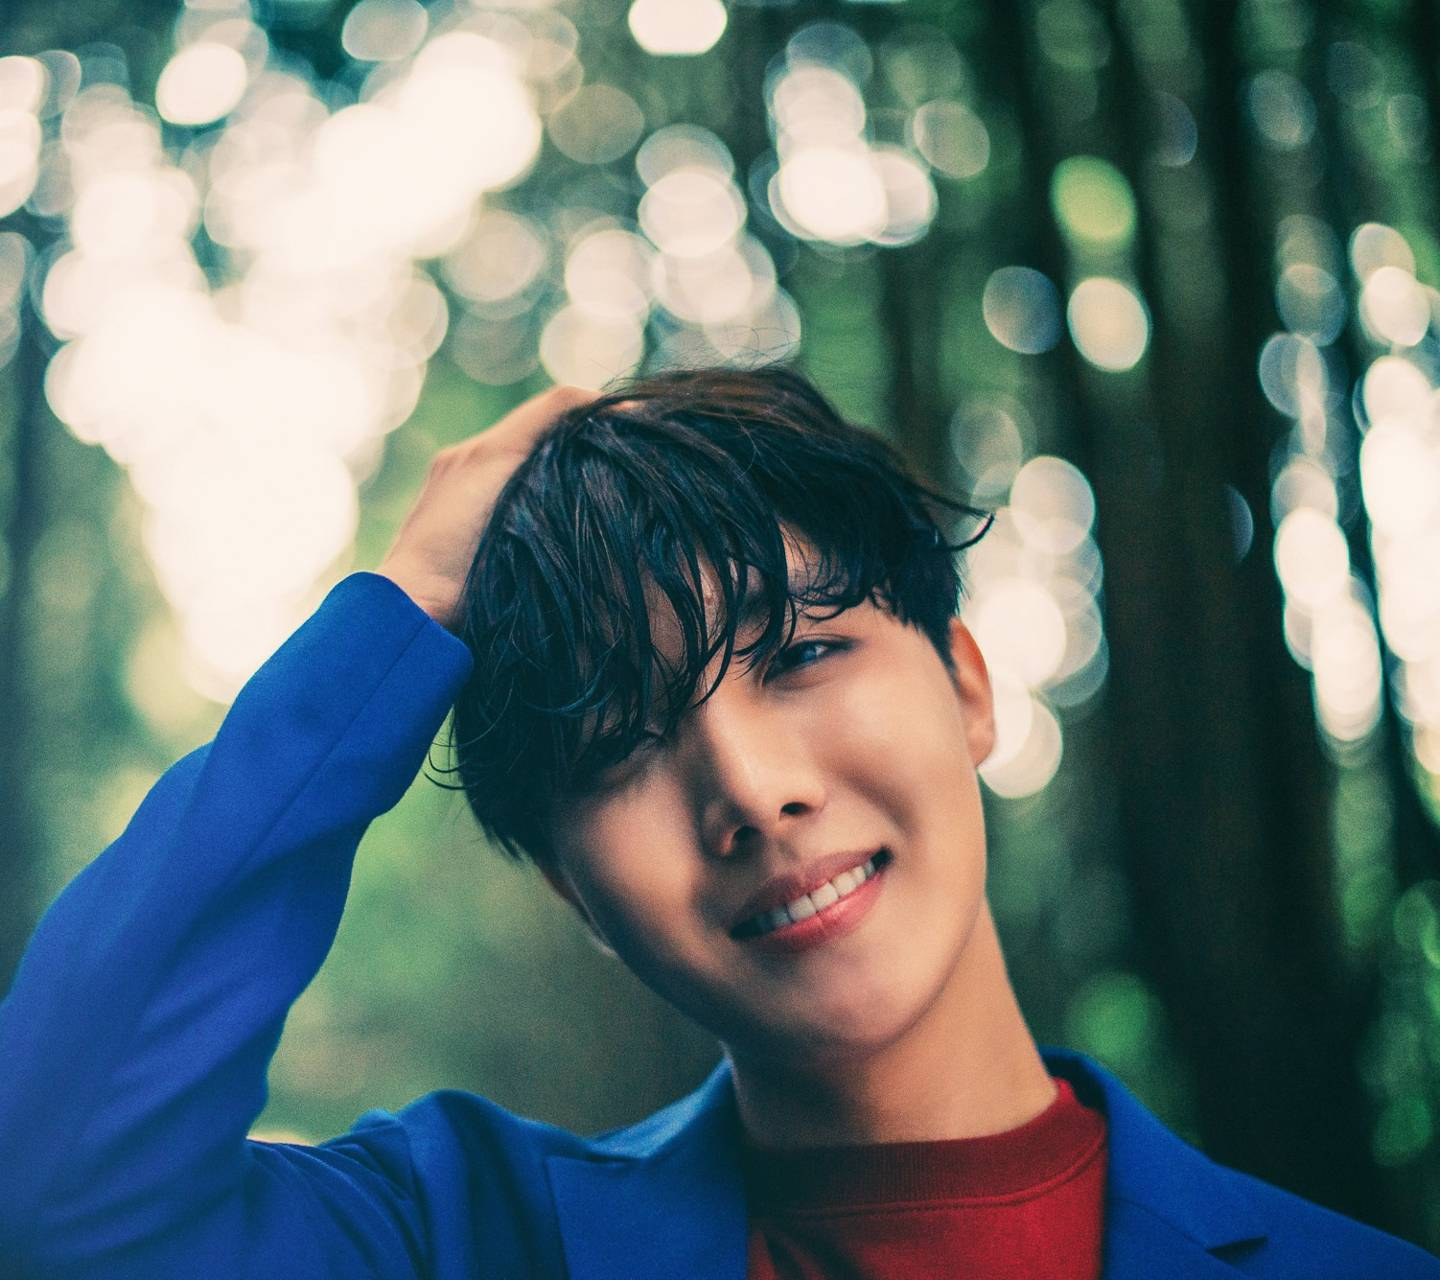 BTS Jhope Wallpapers - Top Free BTS Jhope Backgrounds ...